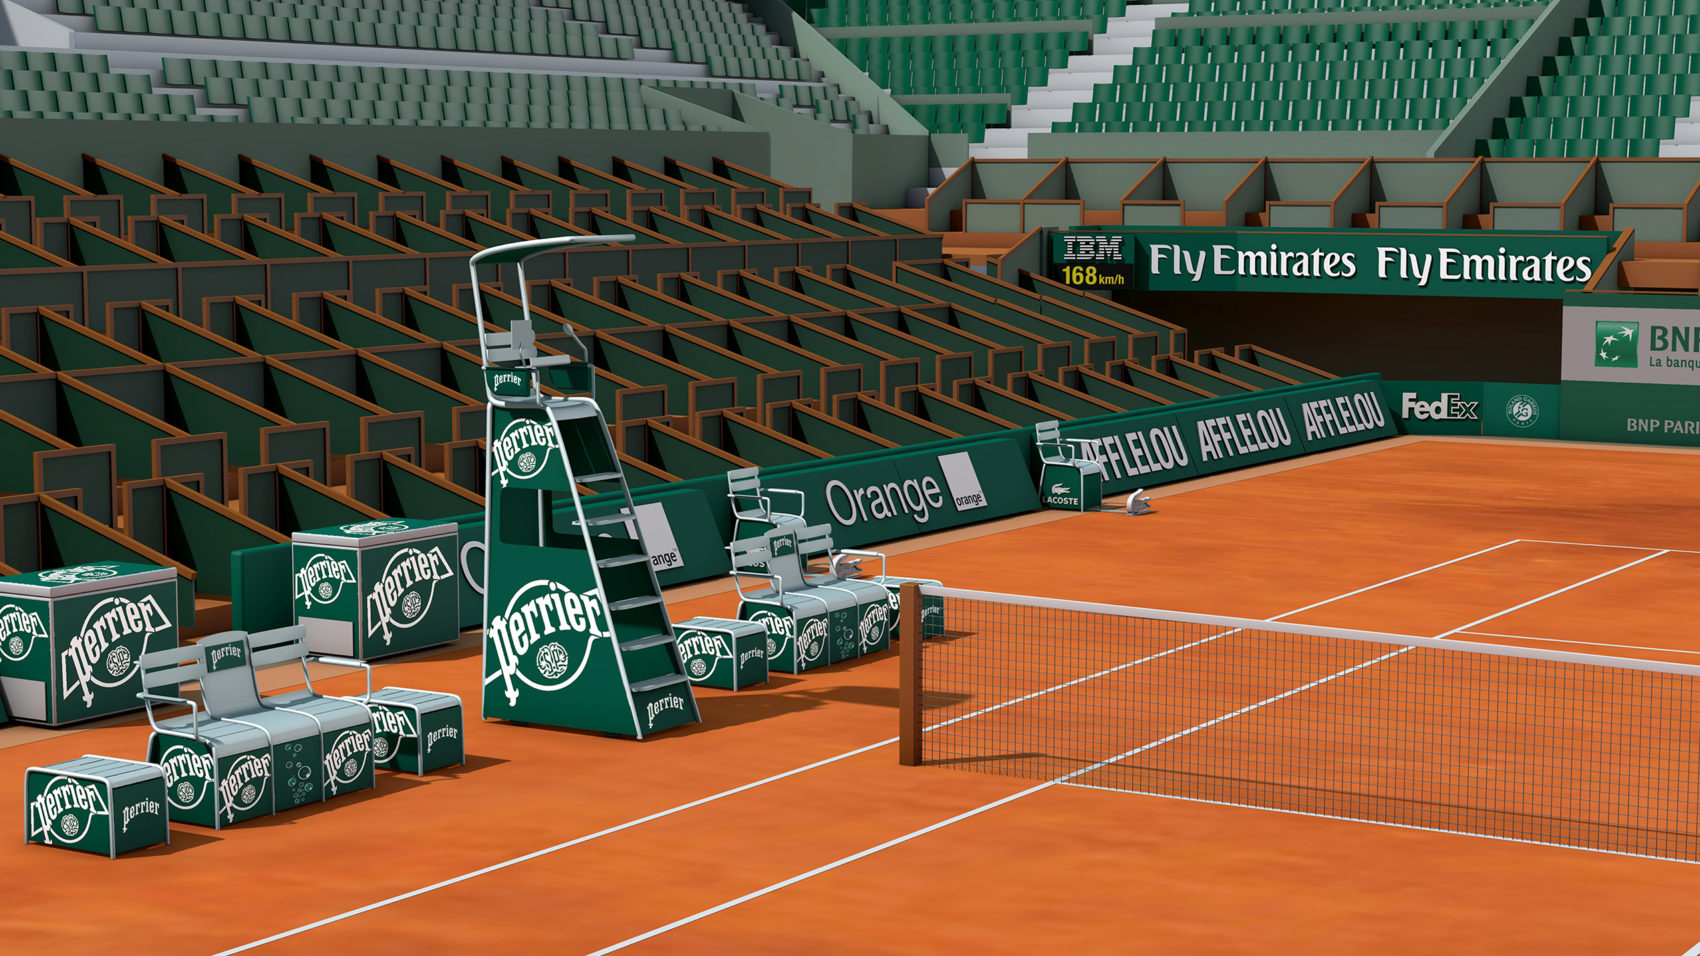 Projet_project_realisation_FFT_federation_francaise_french_tennis_roland_garros_3